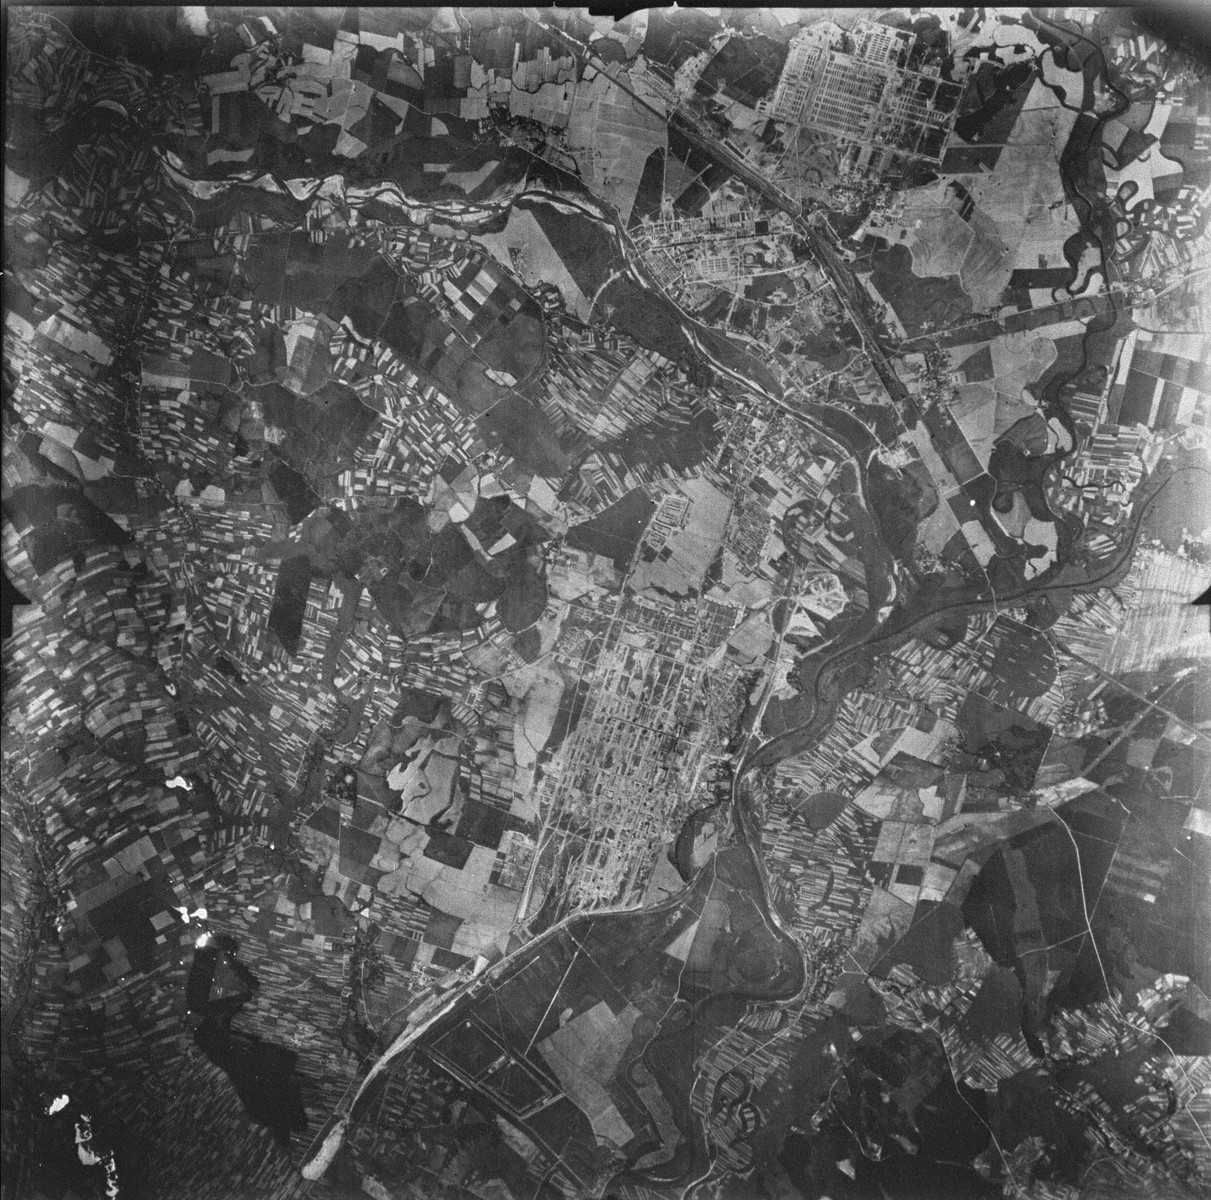 "An aerial reconnaissance photograph of the Auschwitz area showing the three main camps , Auschwitz I, Auschwitz II (Birkenau), and Auschwitz III (Monowitz), as well as the I.G. Farben complex. The image demonstrates the relative size of the three camps.  [oversized photograph]  Mission:  60 PRS/462 60 SQ;  Scale: 1/54,000;  Focal Length: 6"";  Altitude: 27,000'"